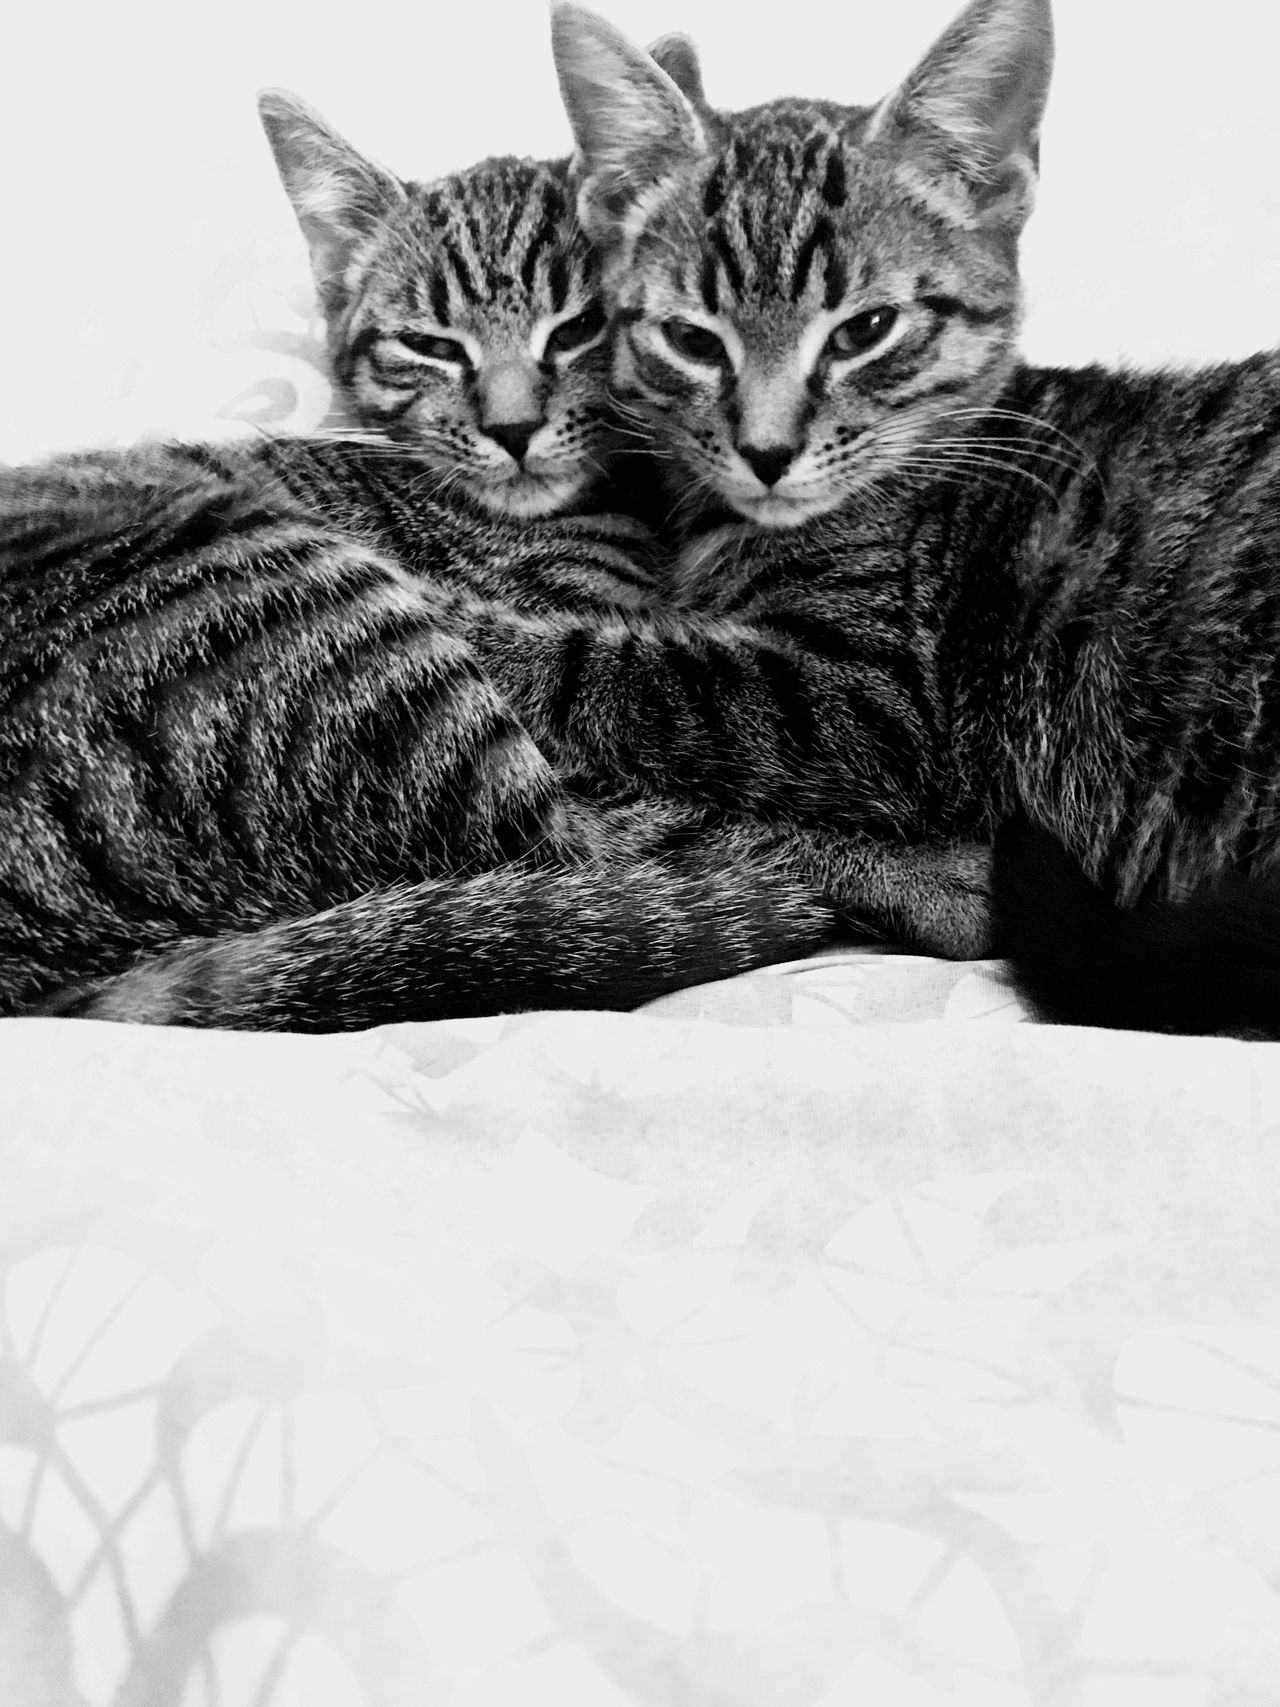 Mia and Maia Babys Kitten Check This Out Selective Focus Relaxing Freshness Lifeisbeautiful Homelover Home Gift Best  Ourcat Love Domestic Cat Feline Pets Indoors  Domestic Animals Mammal No People Animal Themes Portrait Friendship Close-up Day EyeEmNewHere